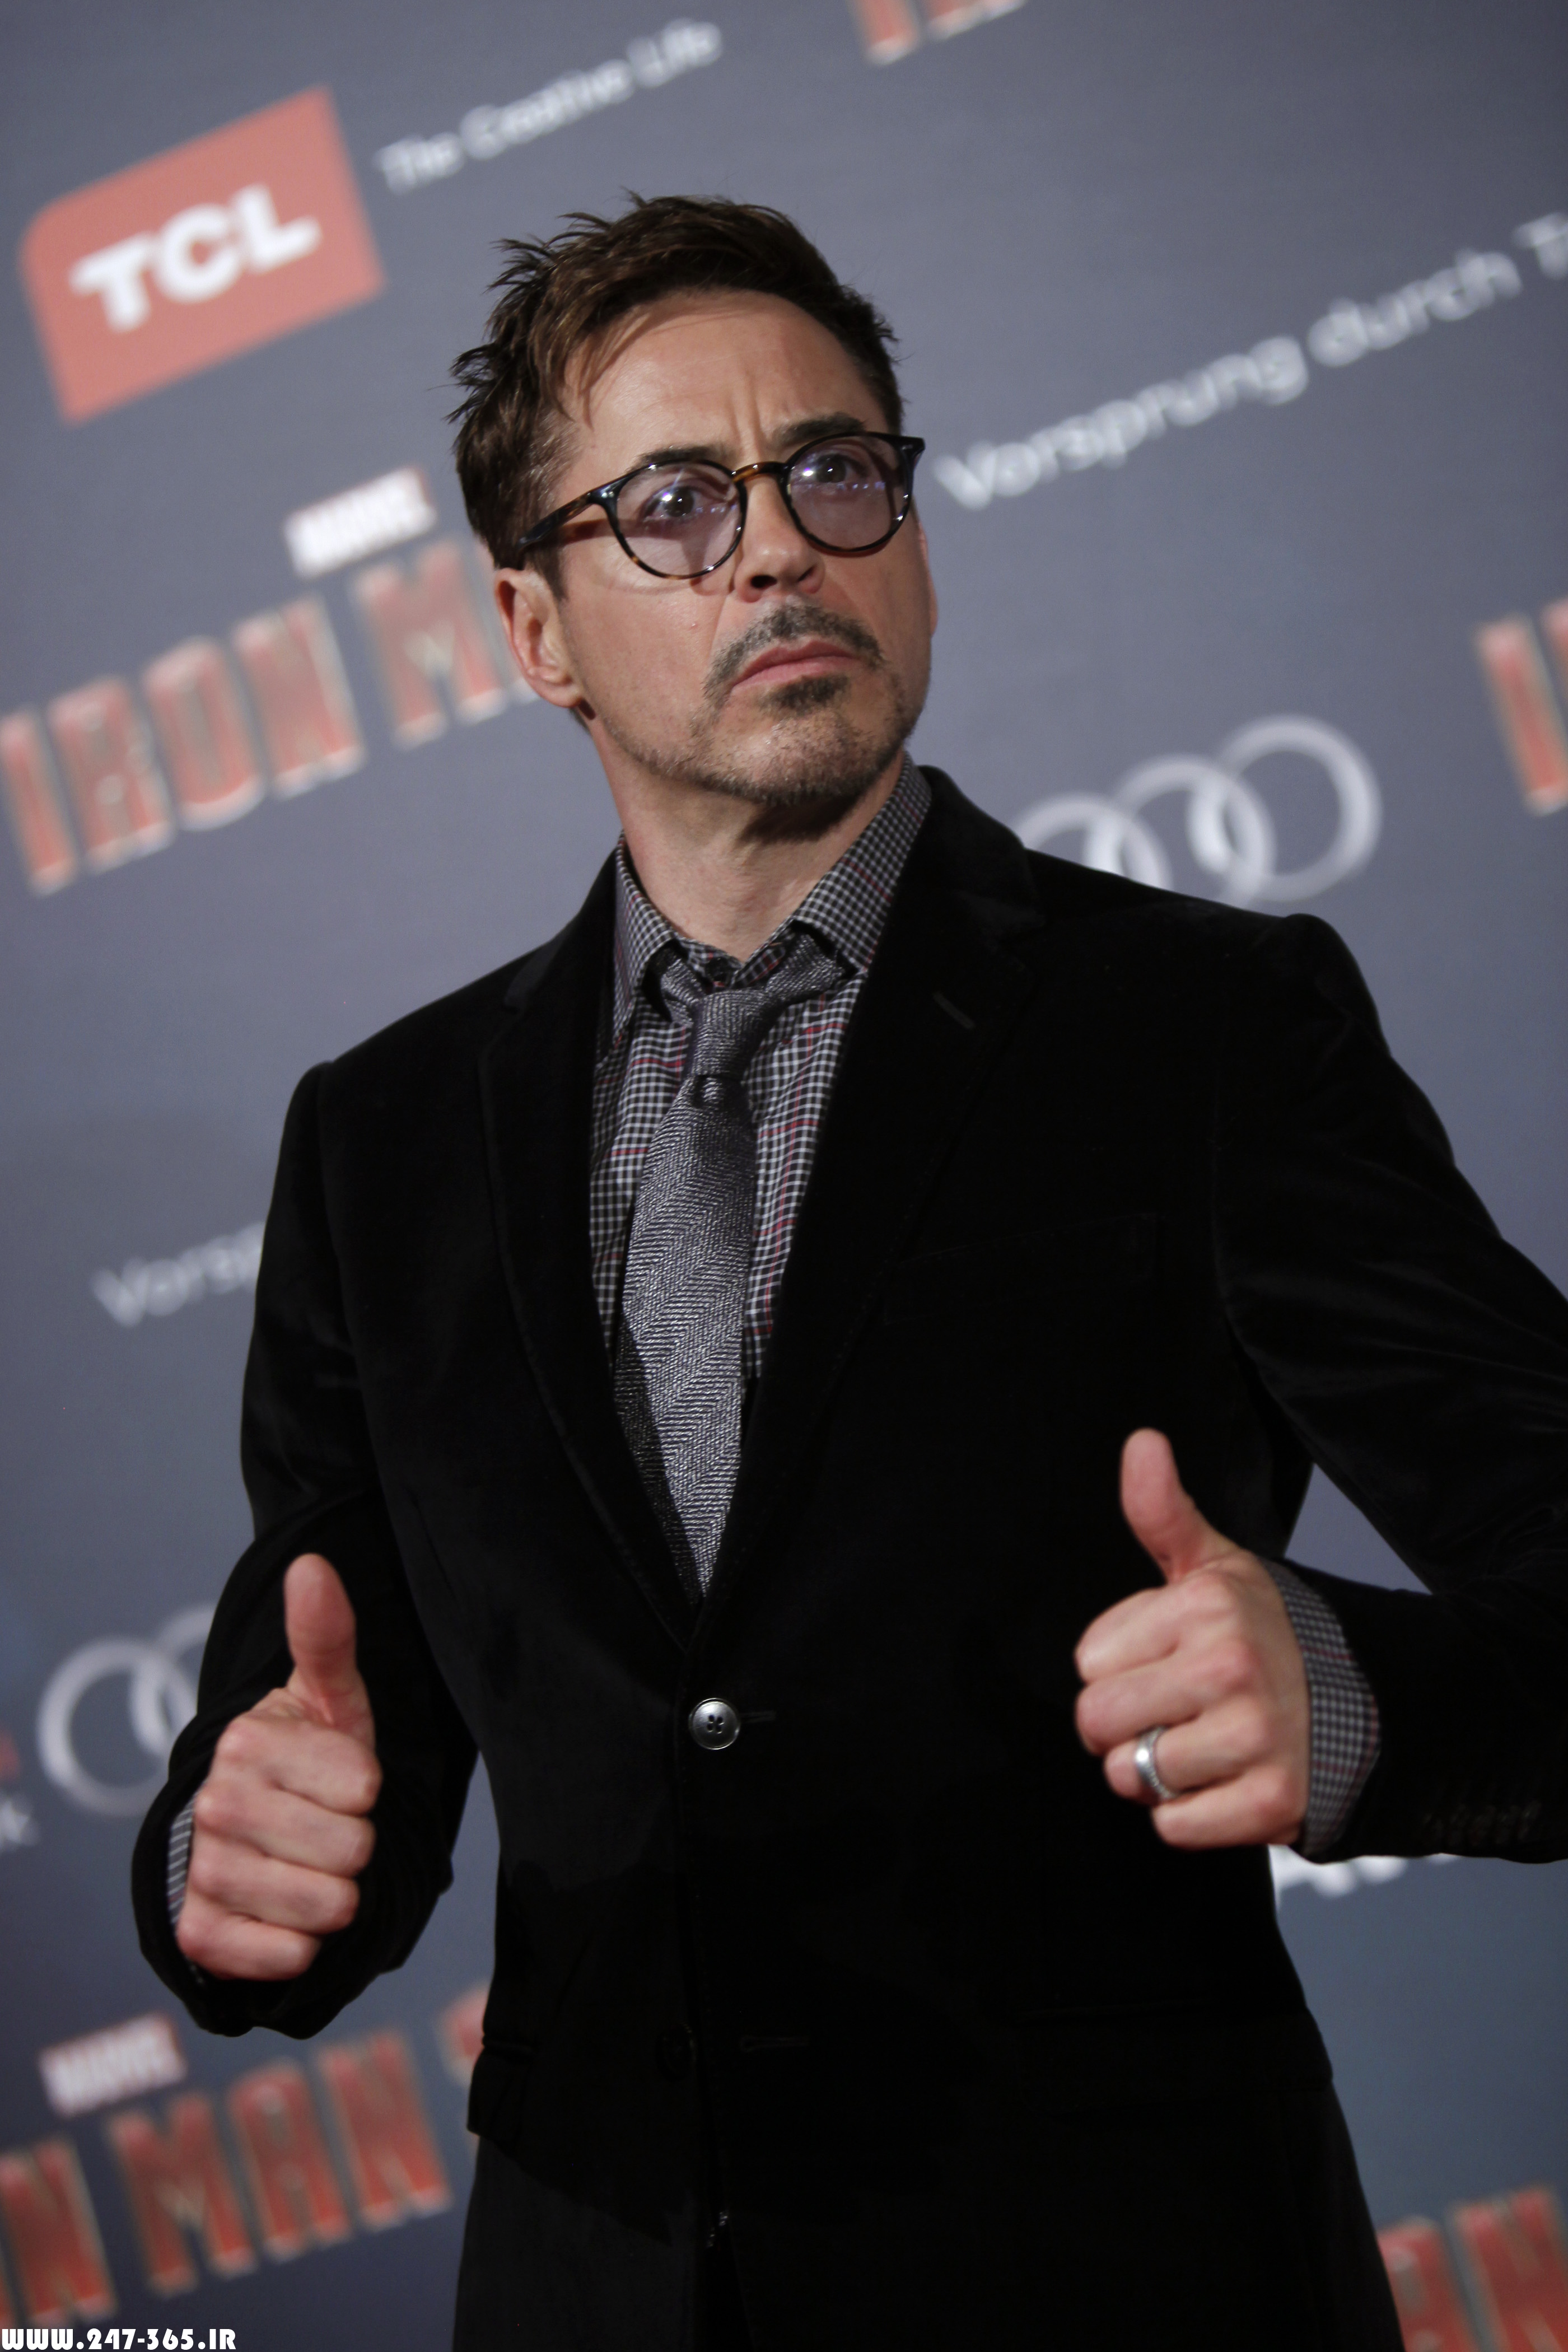 http://dl.247-365.ir/pic/celebrity/robert_downey_jr_2/Robert_Downey_Jr_2_09.jpg